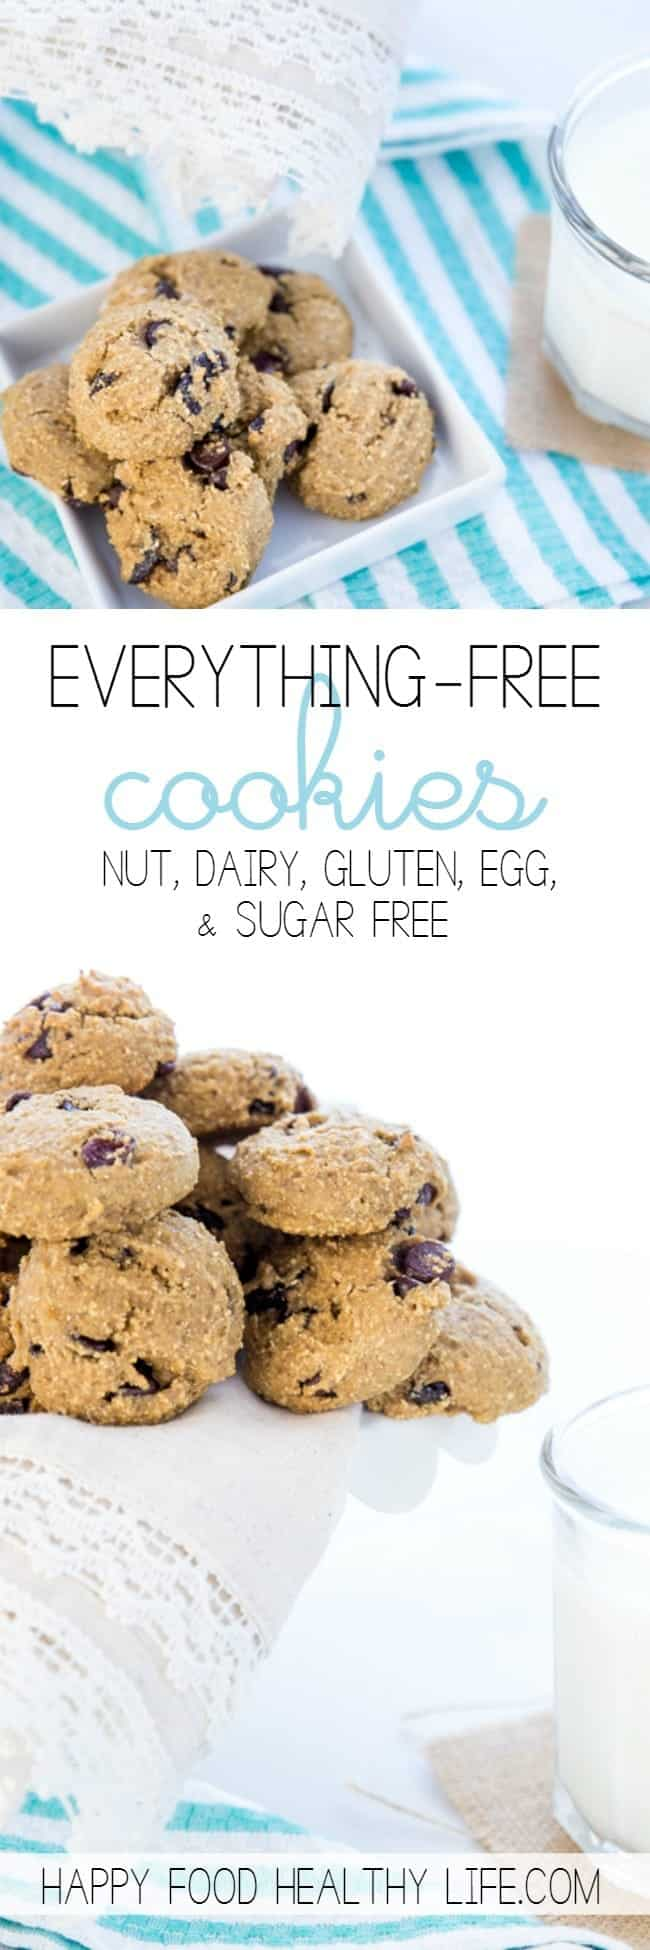 These Everything-Free Cookies are for absolutely everyone. Dairy-free, Gluten-free, Egg-free, Nut-free, and Sugar-free. You simply can't go wrong with this delicious recipe because the one thing they're not free of is FLAVOR! Click through to get my new favorite cookie recipe (and also to learn how I managed to find control around cookie dough!!)